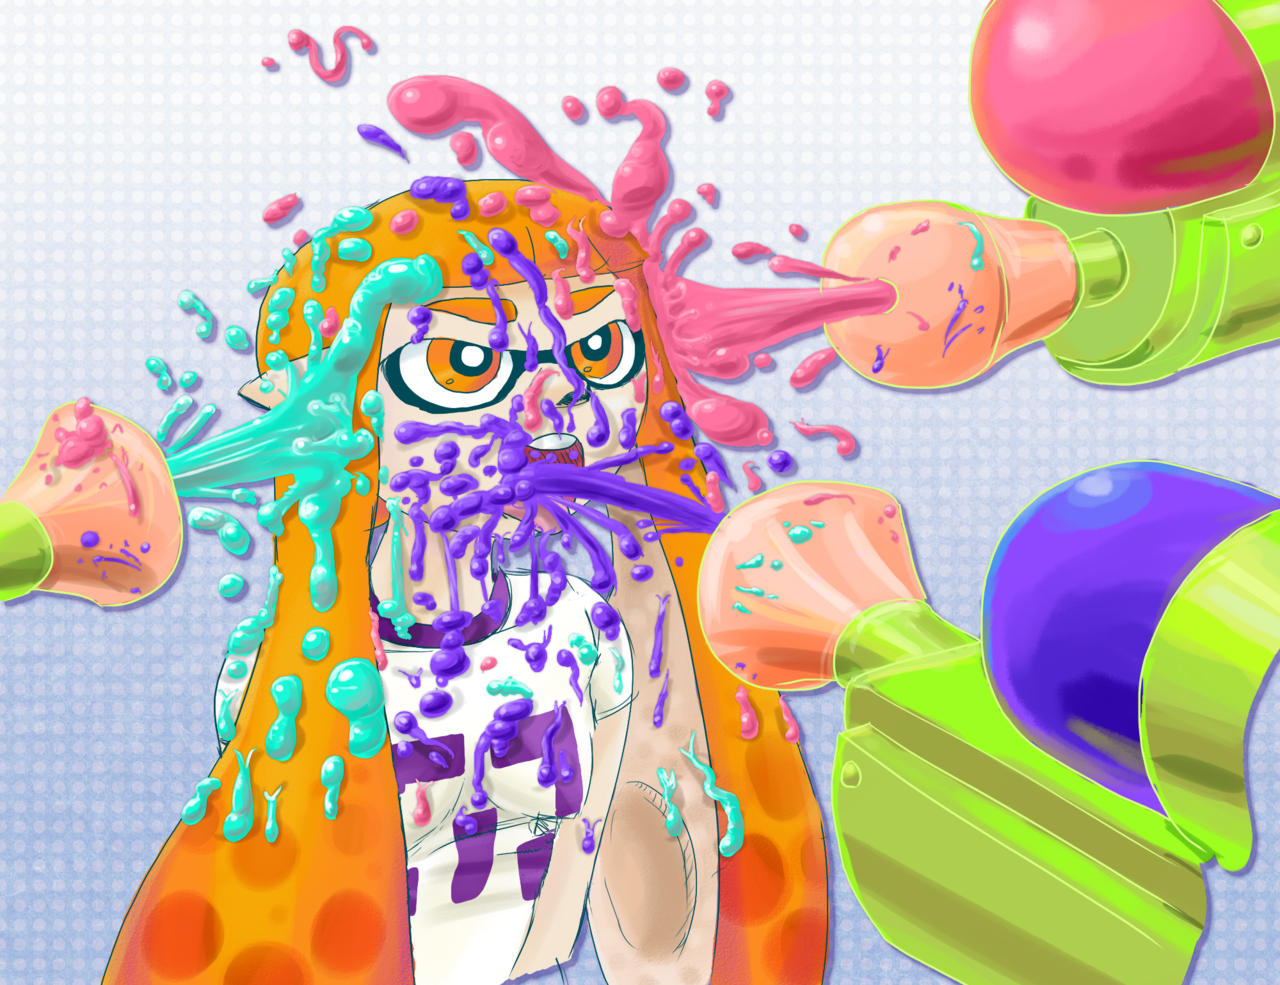 48 Inkling Splatoon Squid Wallpaper On Wallpapersafari